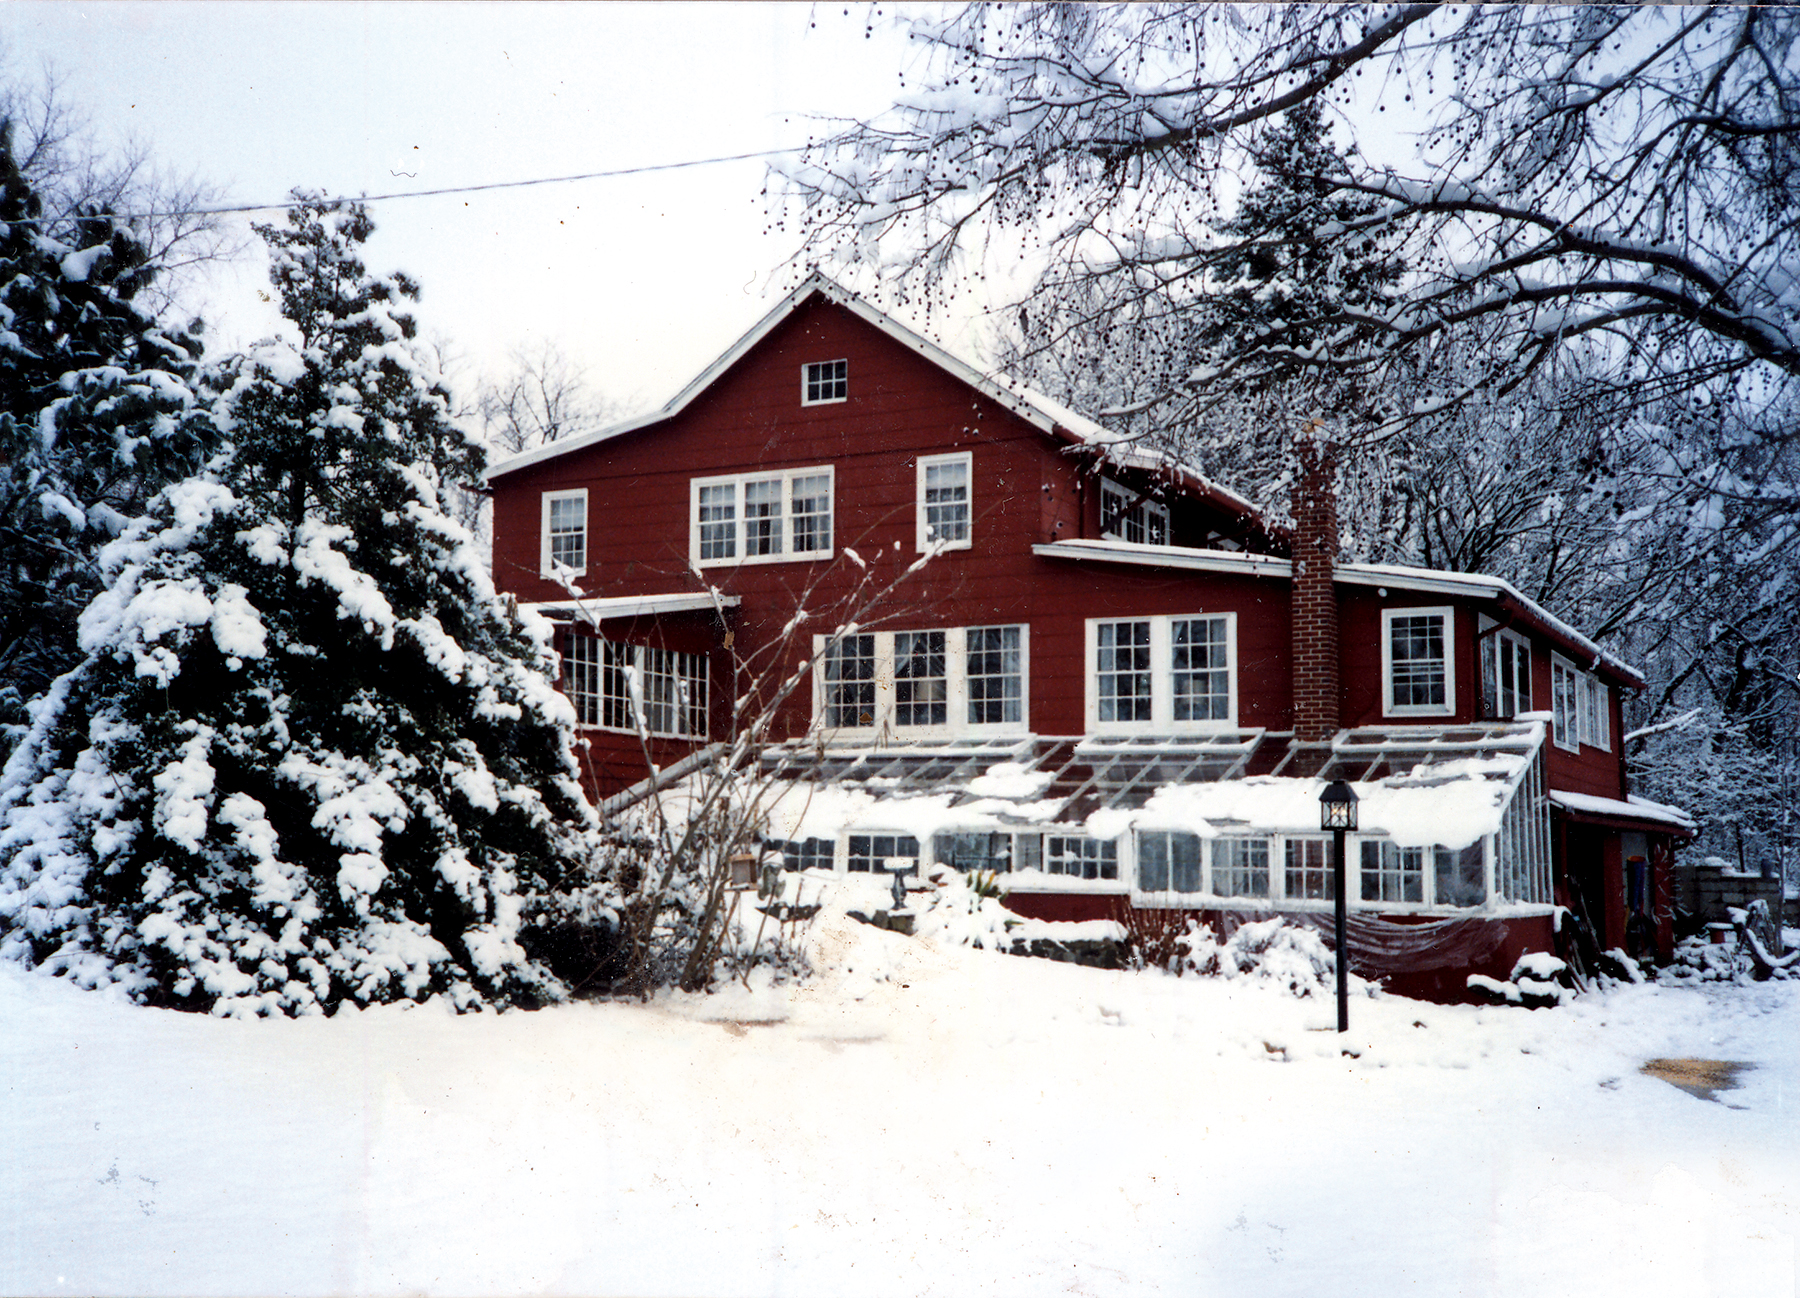 Picture of The Barn in Winter